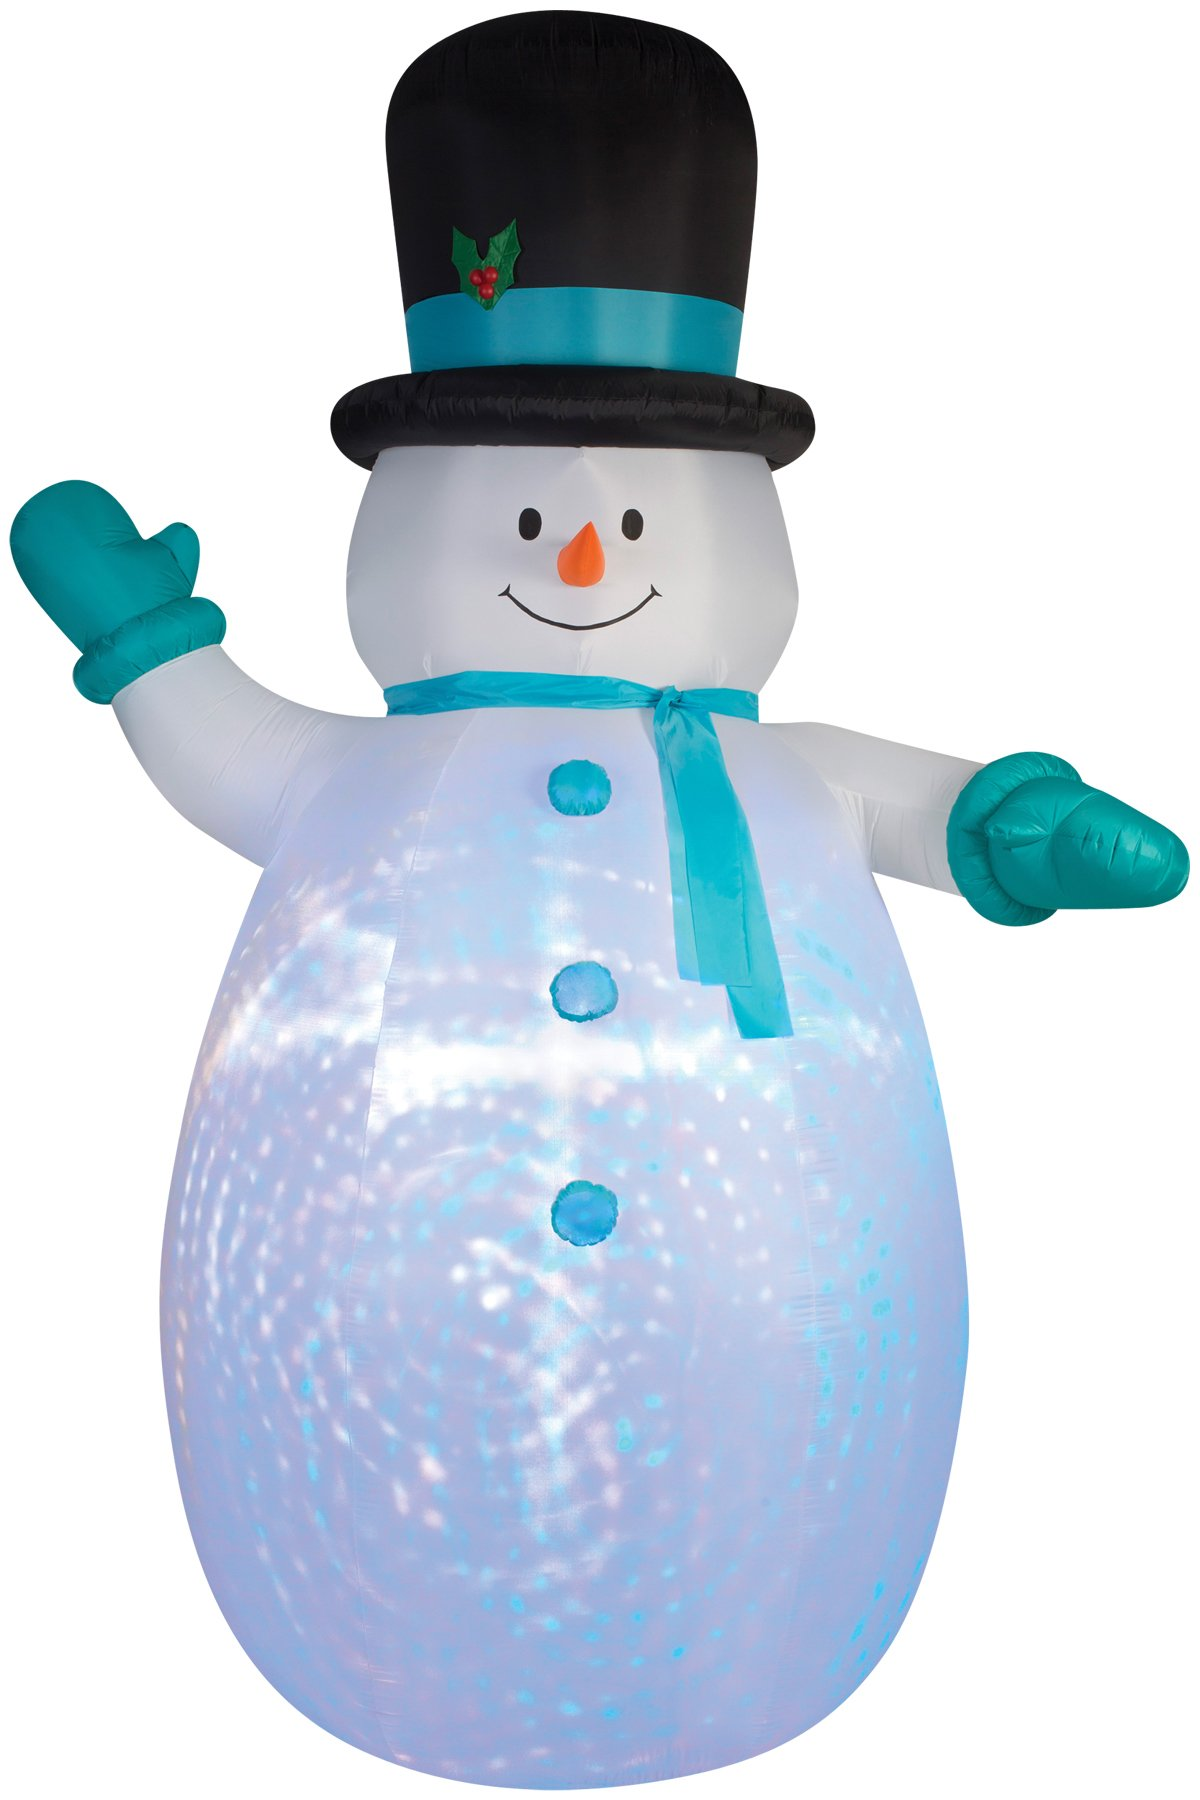 Christmas Inflatable Giant Projection Kaleidoscope Snowman With Top Hat By Gemmy